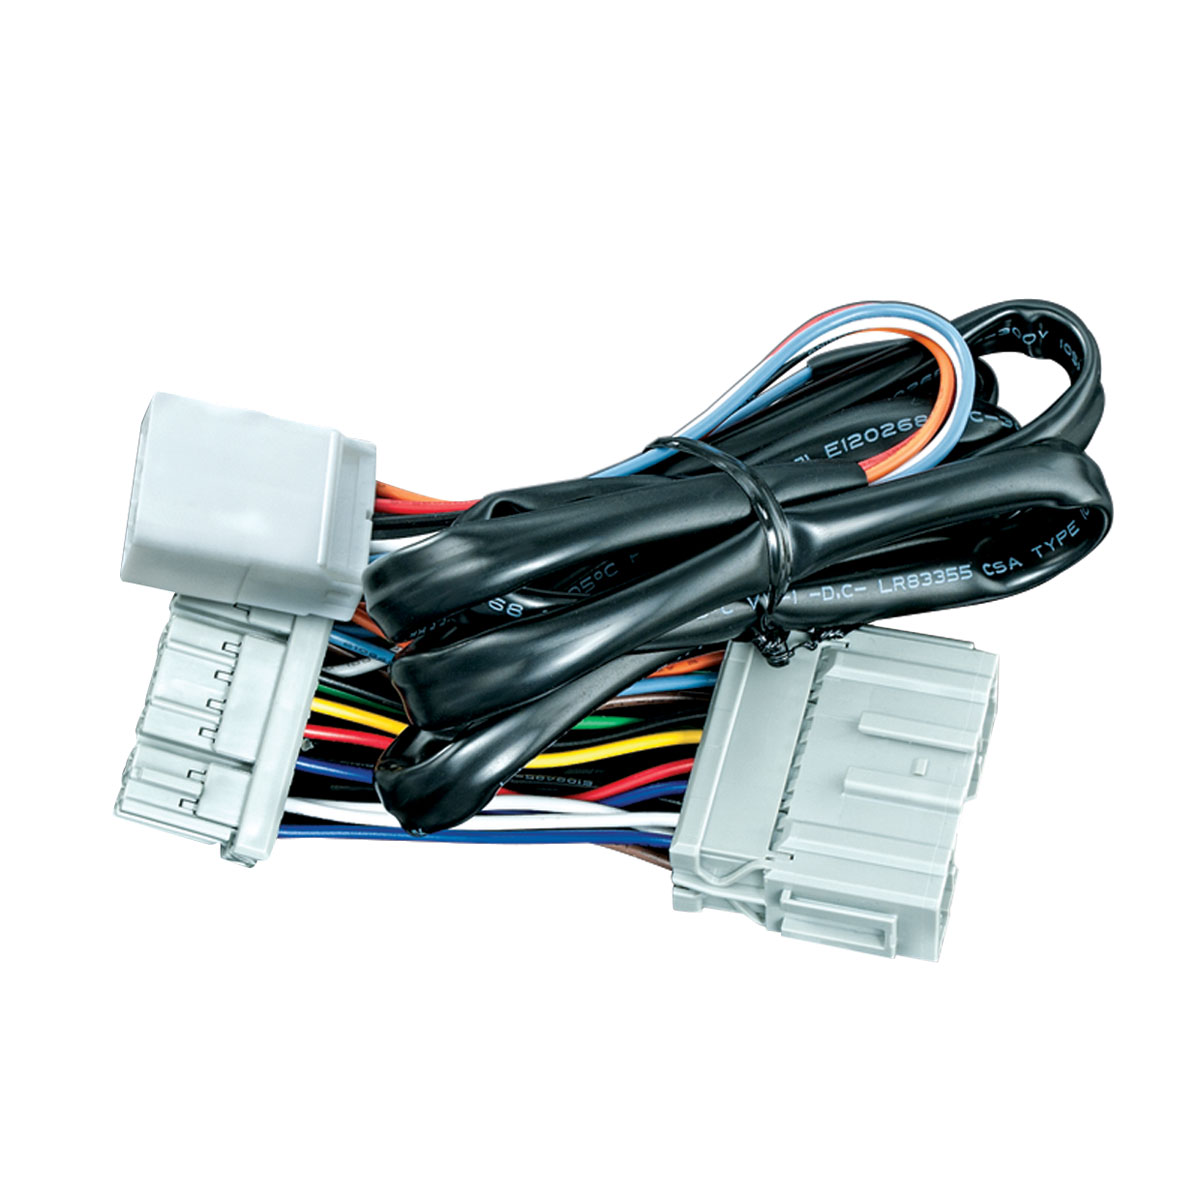 ZZ10554_A kuryakyn rear accessory wiring harness for gl1800 zz10554 j&p accessory wiring harness honda pioneer 1000 at metegol.co